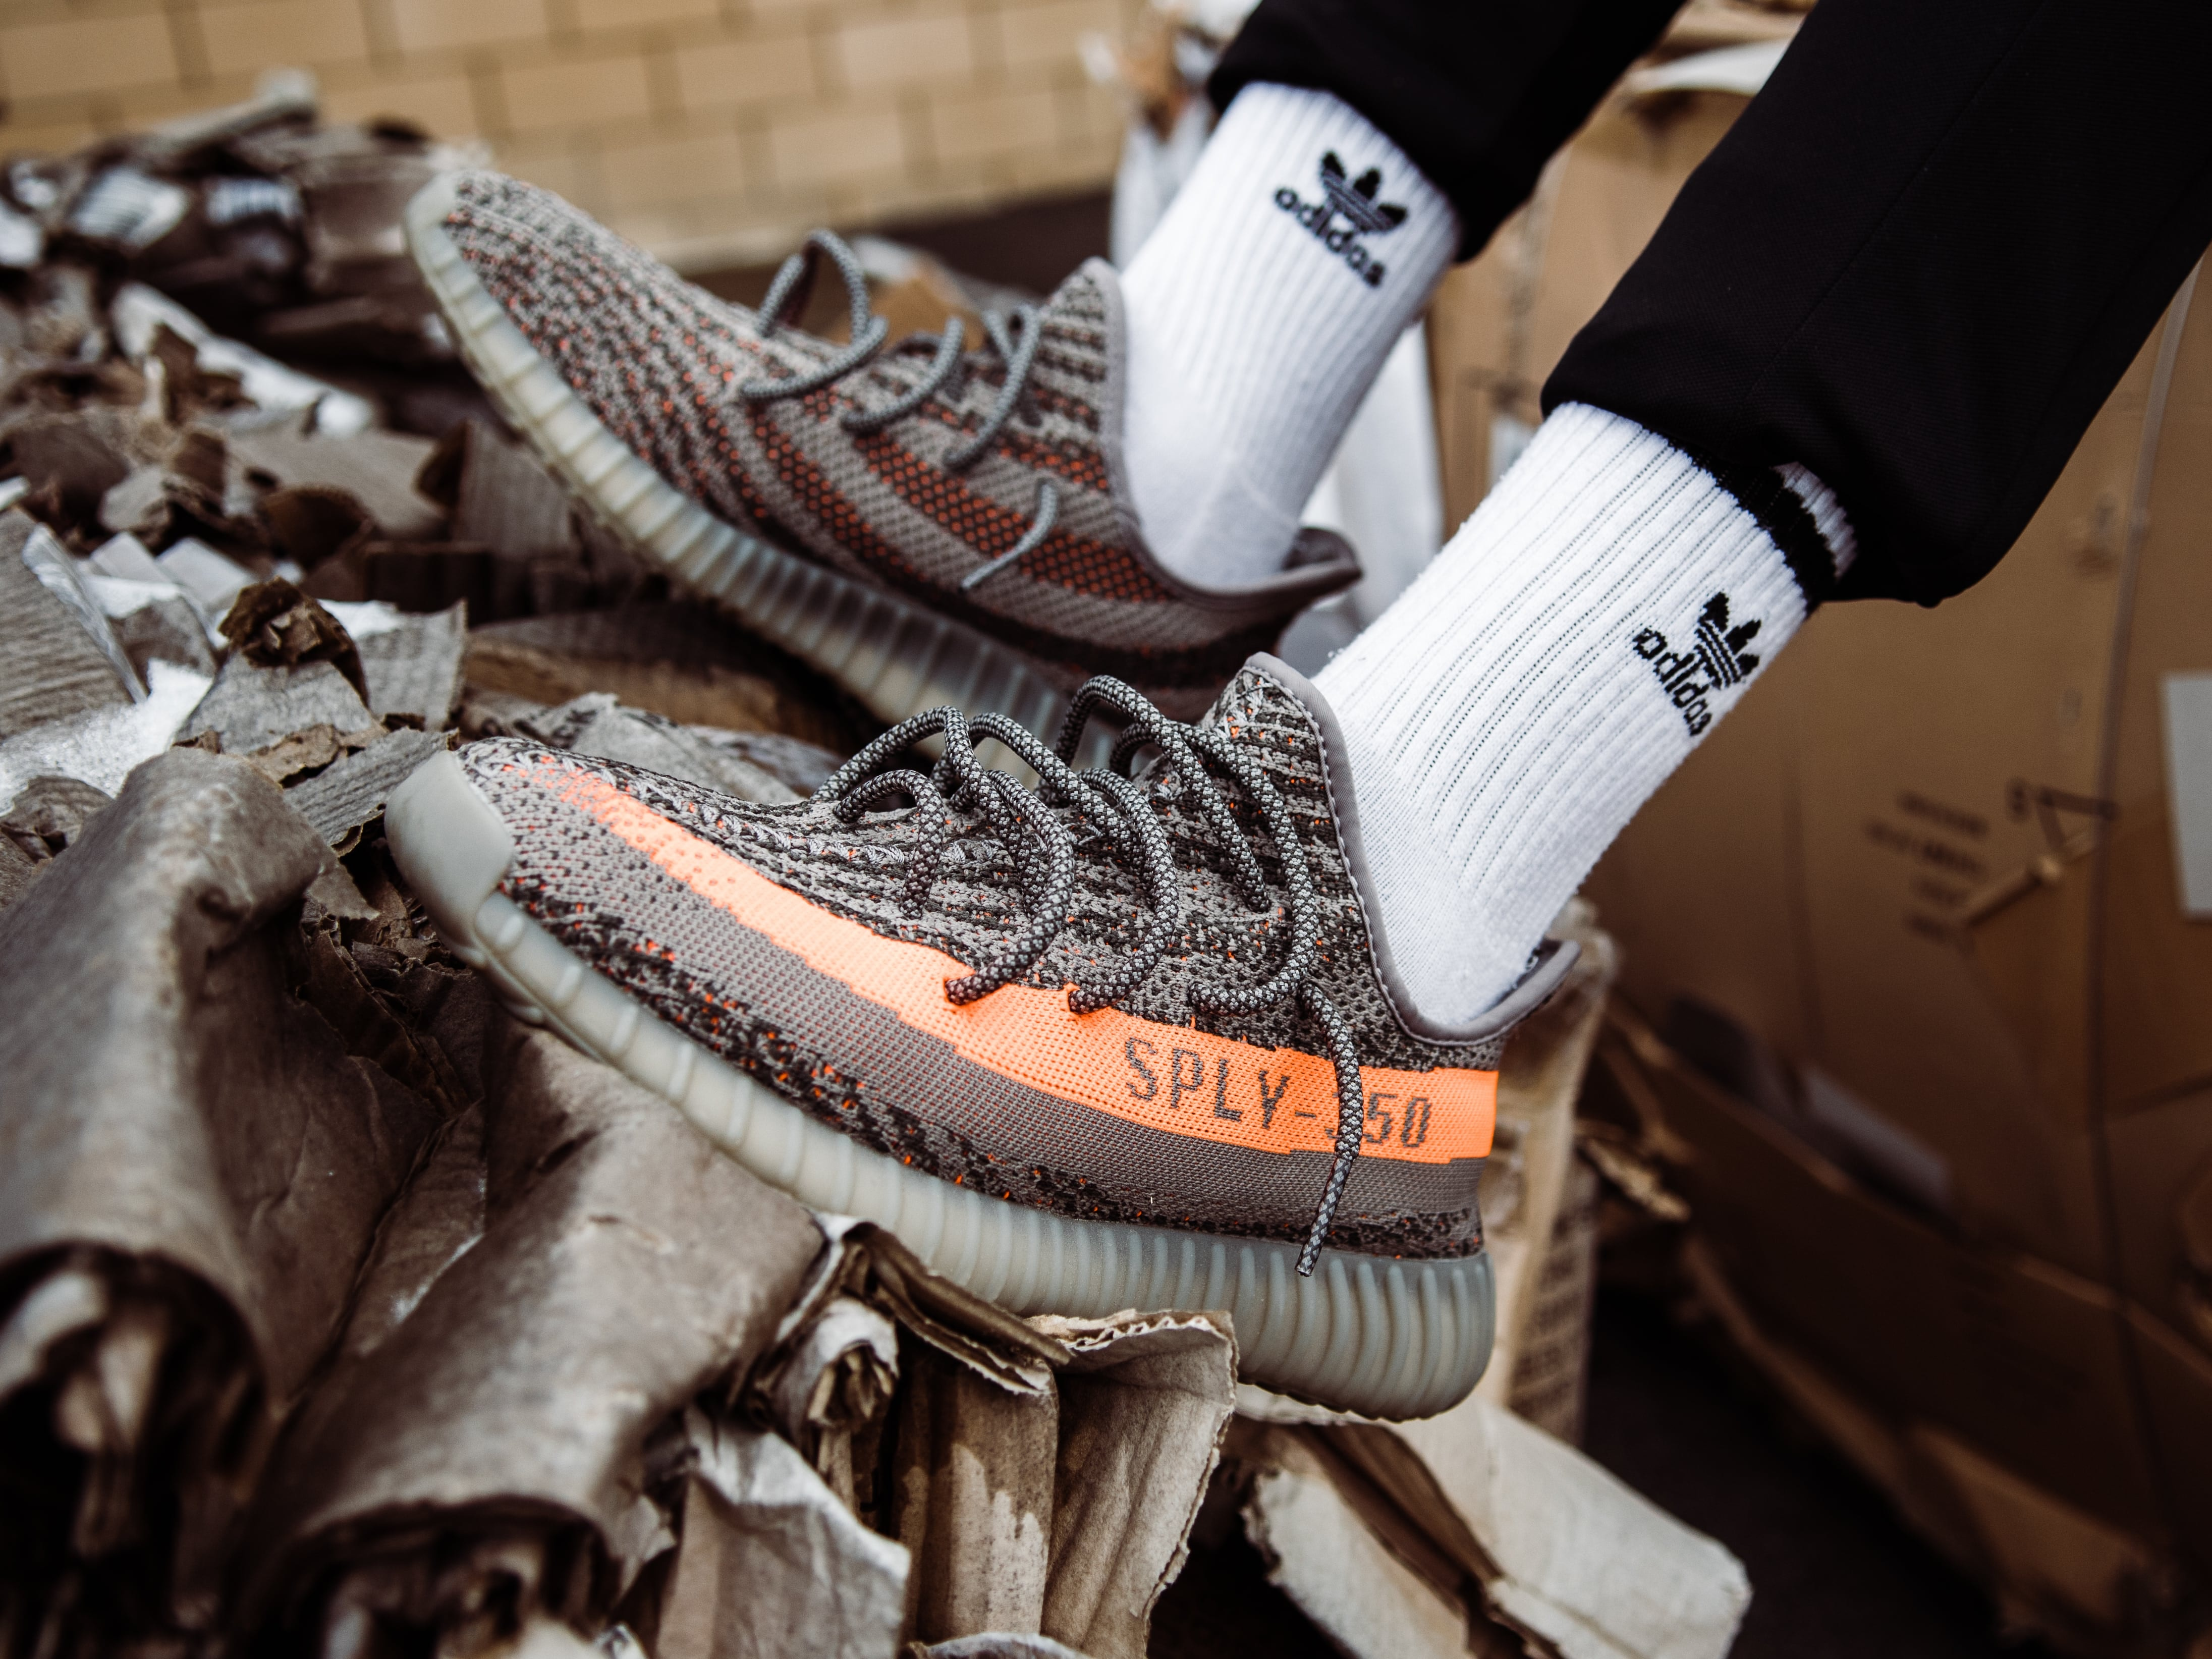 person wearing beluga adidas Yeezy Boost 350 V2 shoes